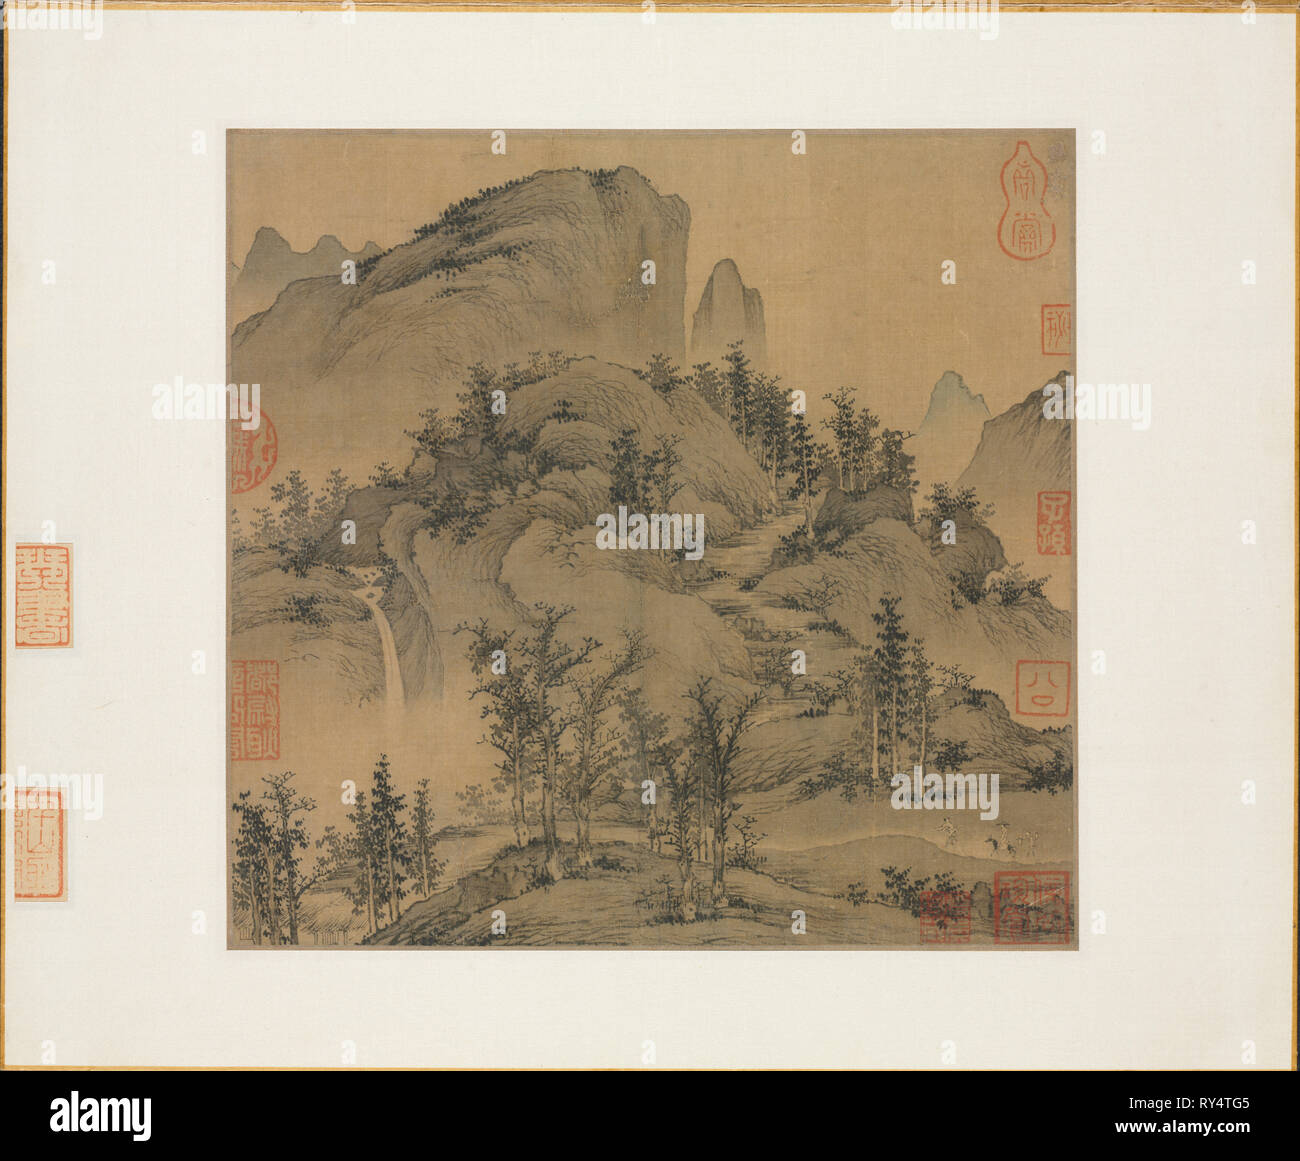 Travelers in Autumn Mountains, 1st half 1300s. Sheng Mou (Chinese, active c. 1310-1350). Album leaf, ink and slight color on silk; image: 24.4 x 26.5 cm (9 5/8 x 10 7/16 in - Stock Image